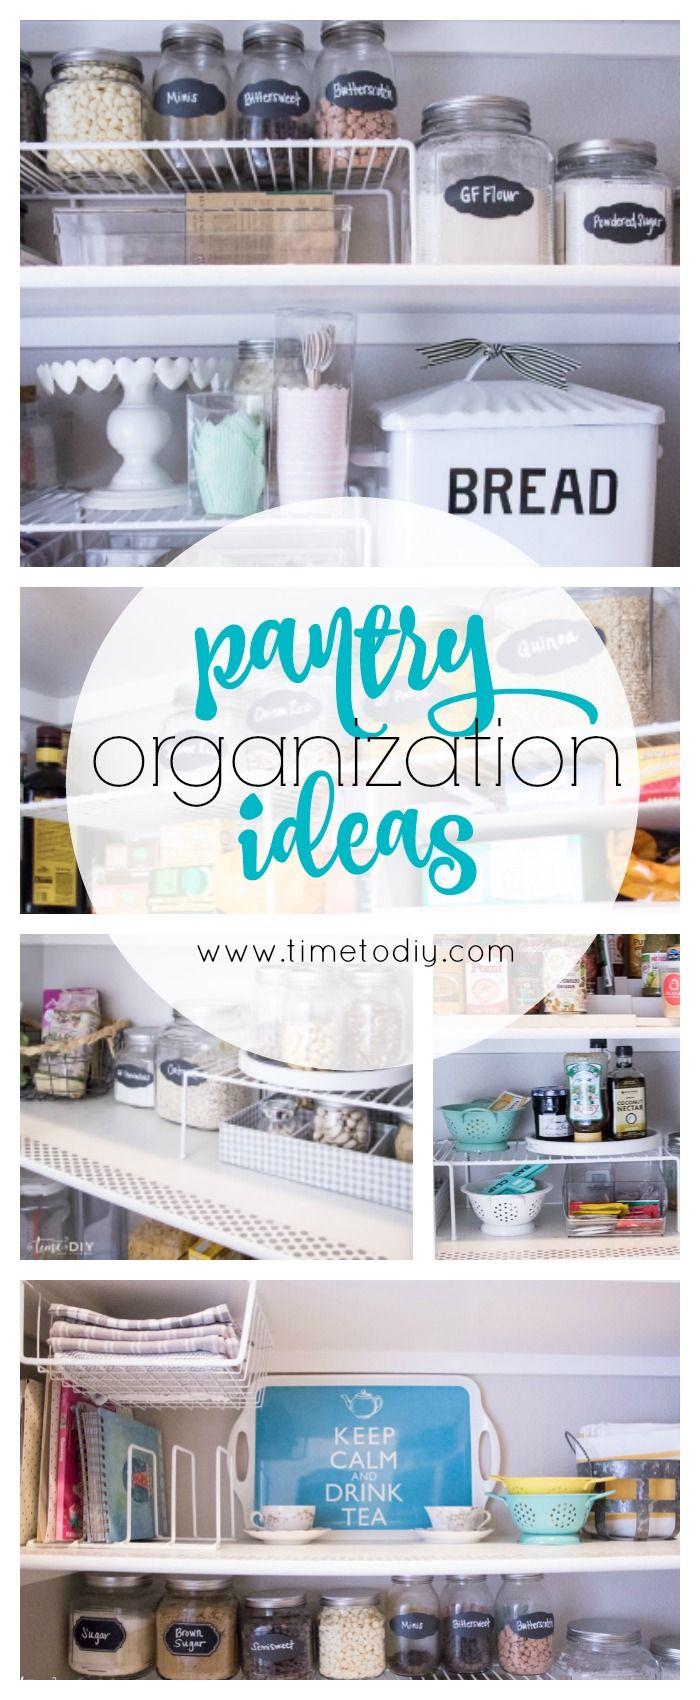 Lots of tips and links to keep your space organized!